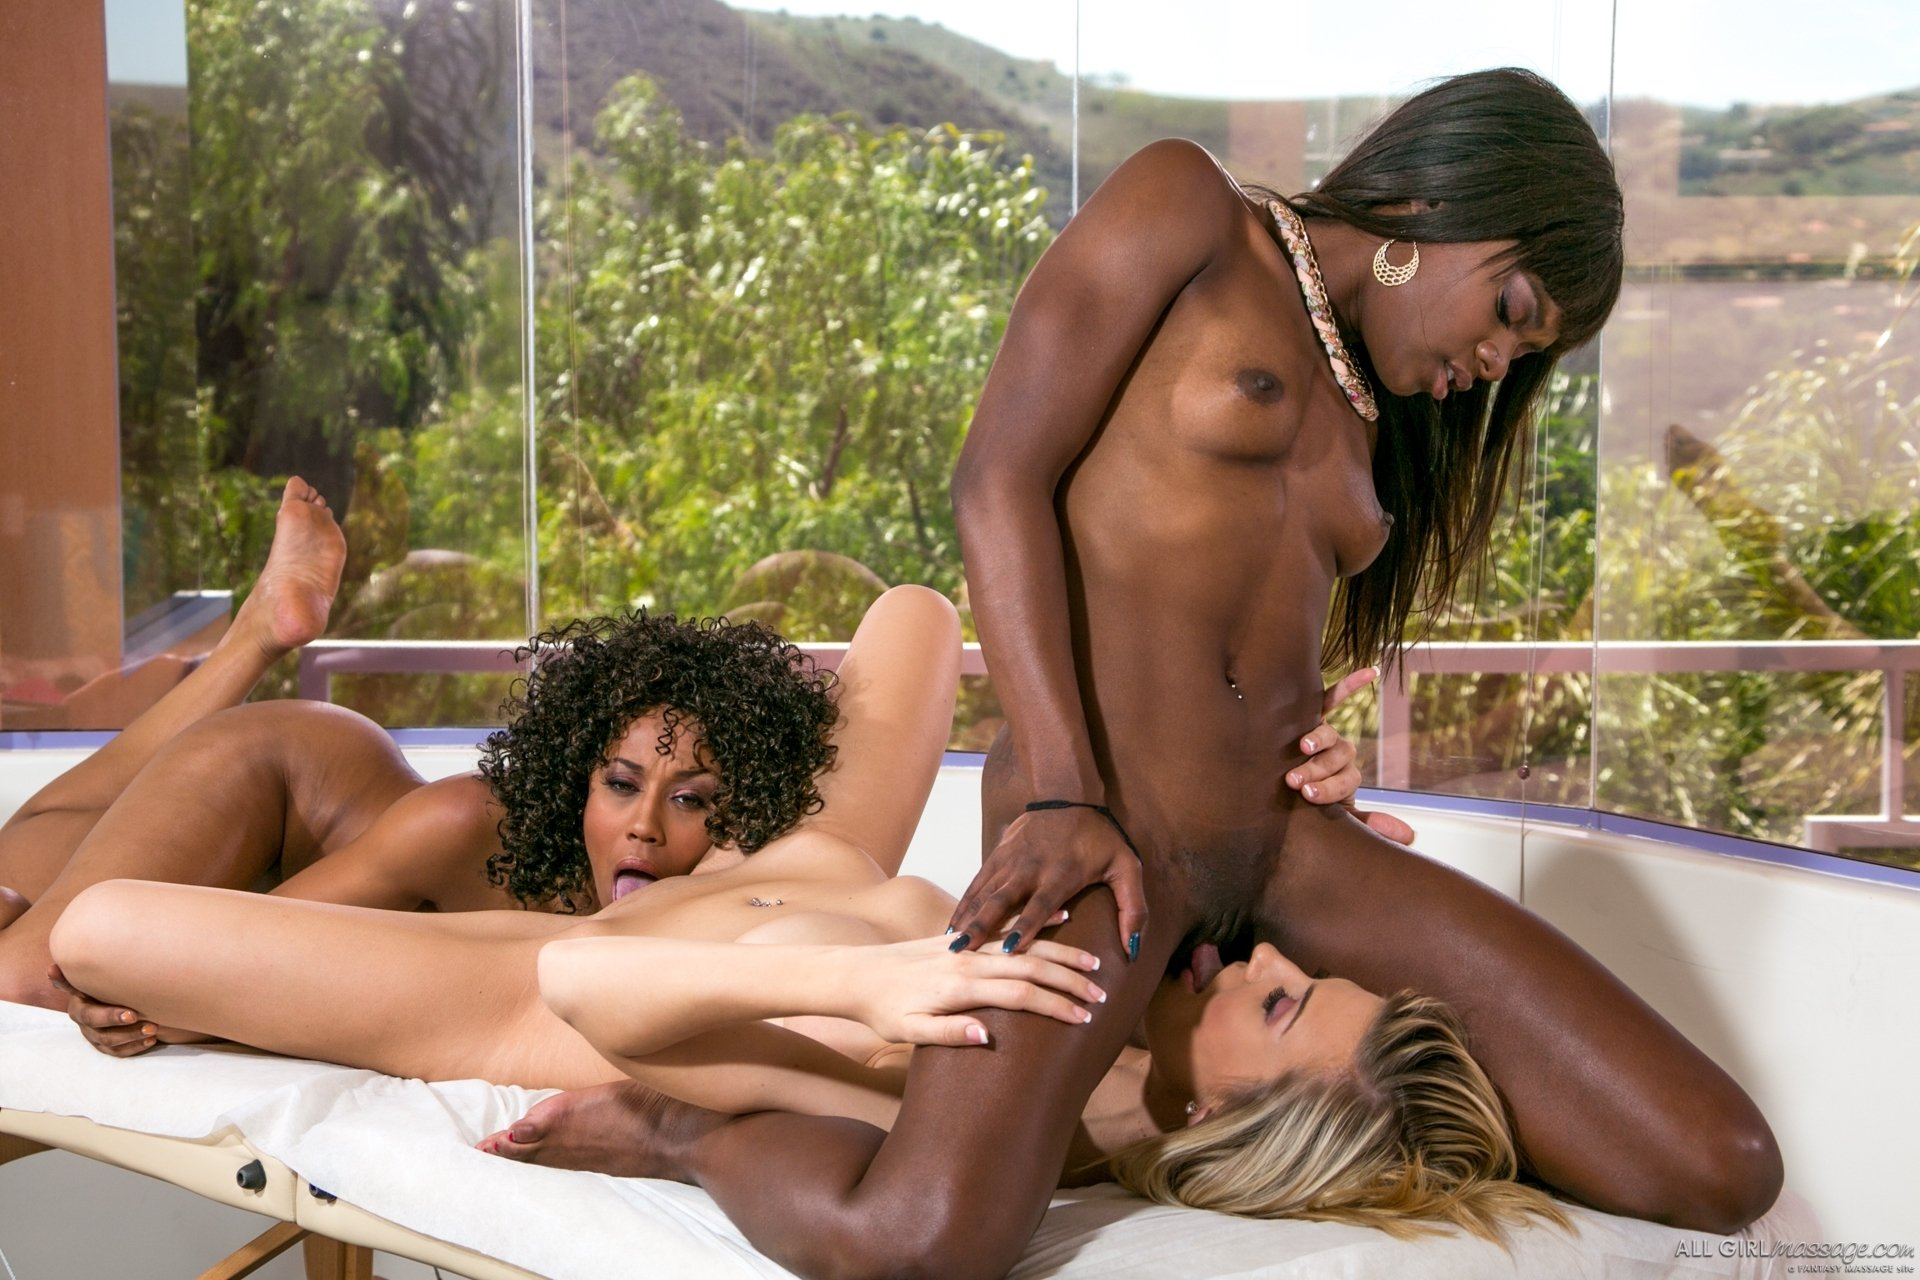 Black lesbian sex picture, just nude galleries